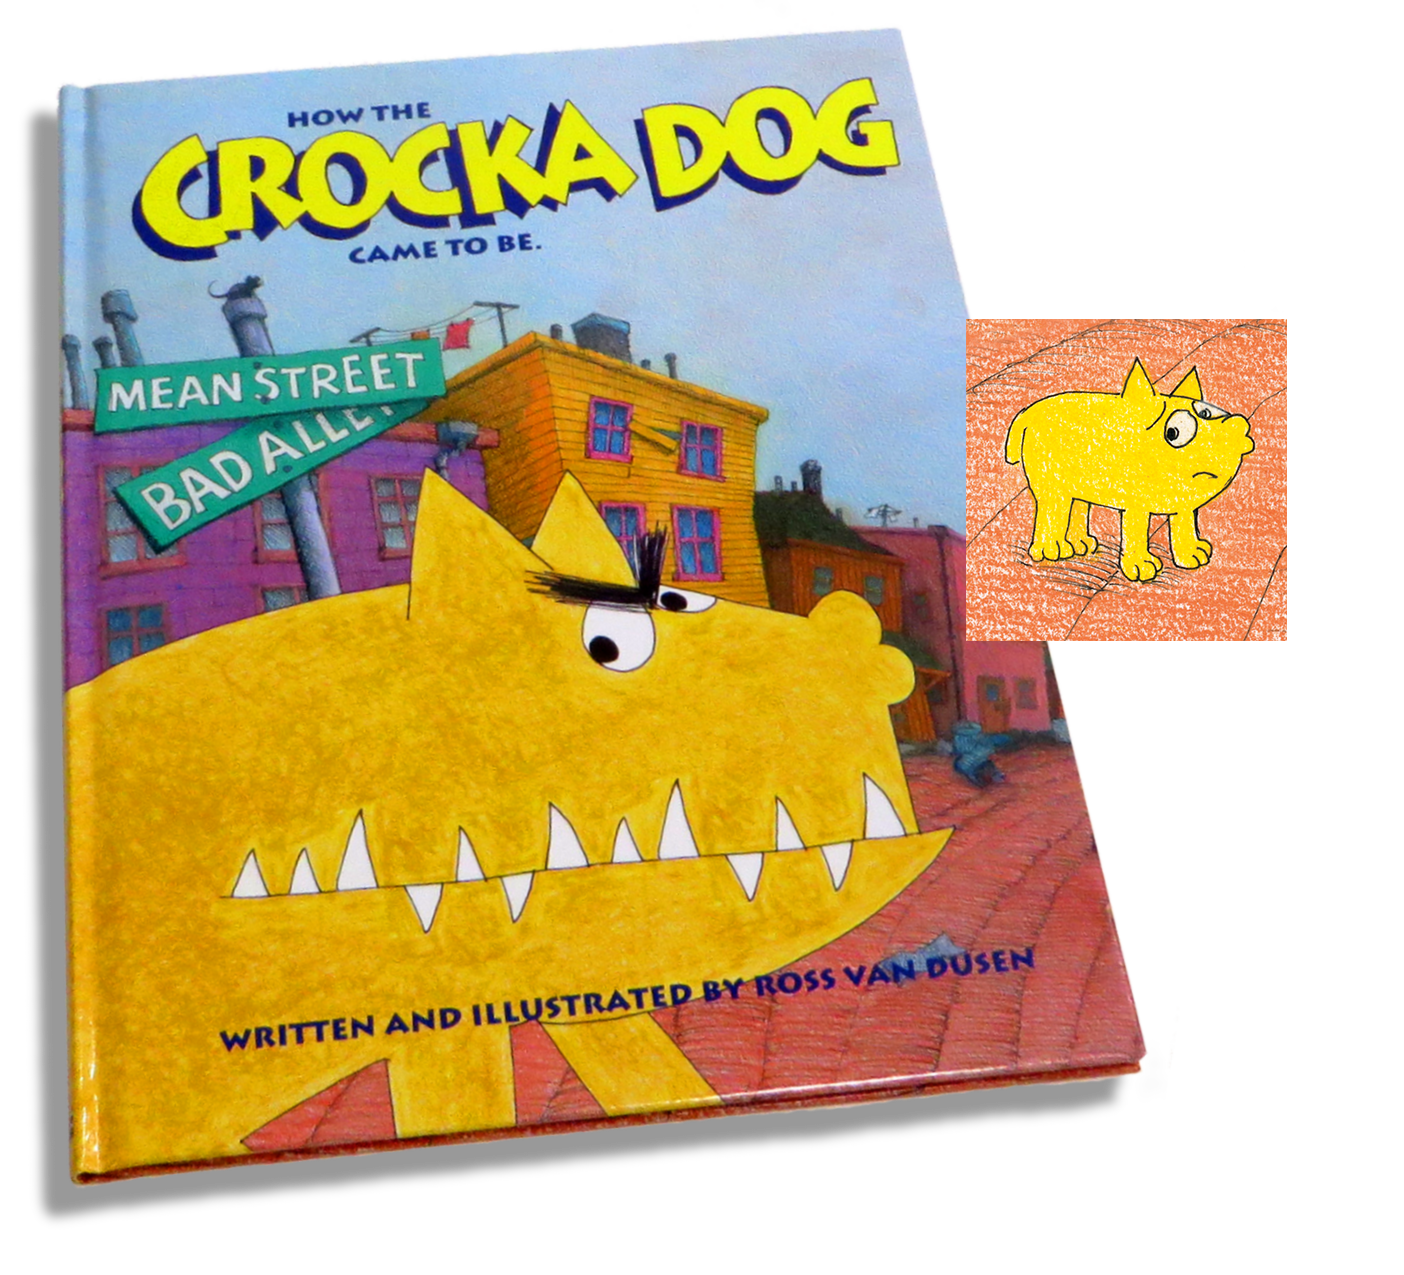 How The Crocka Dog Came To Be book